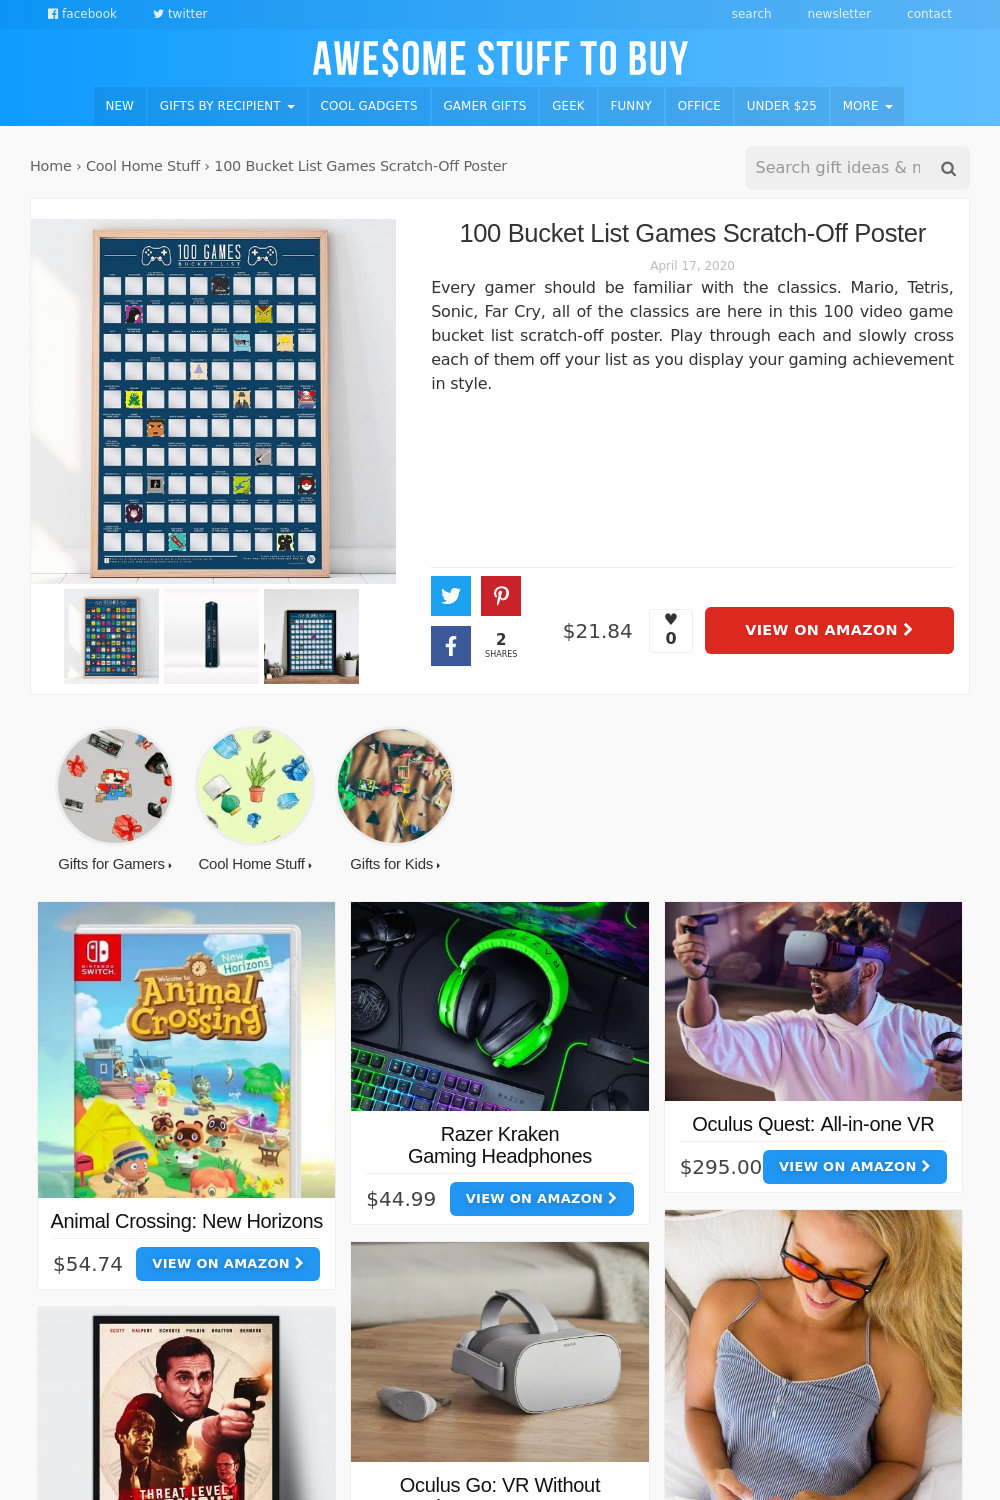 Games // Awesome Stuff to Buy